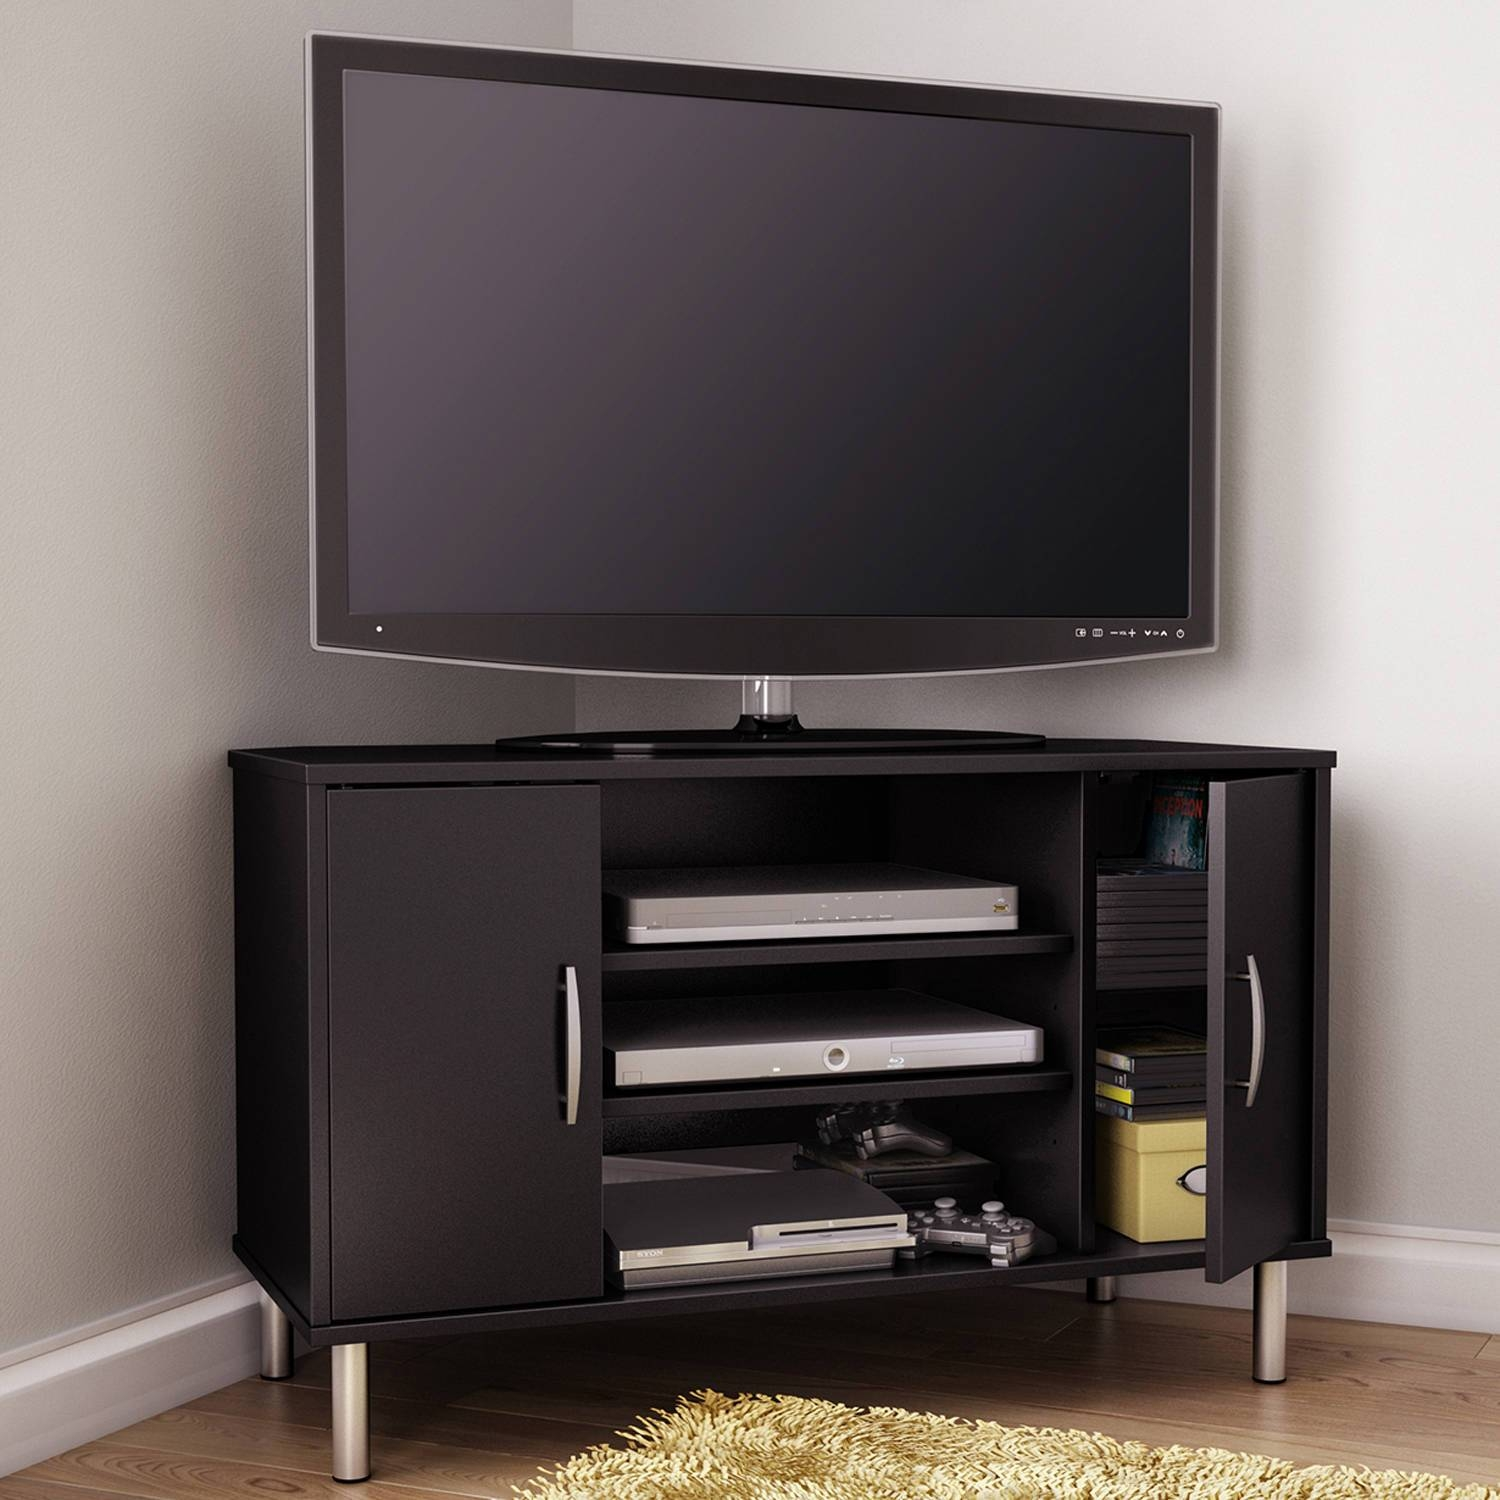 "South Shore Renta Corner Tv Stand For Tvs Up To 42"", Multiple with Corner Tv Stands (Image 14 of 15)"